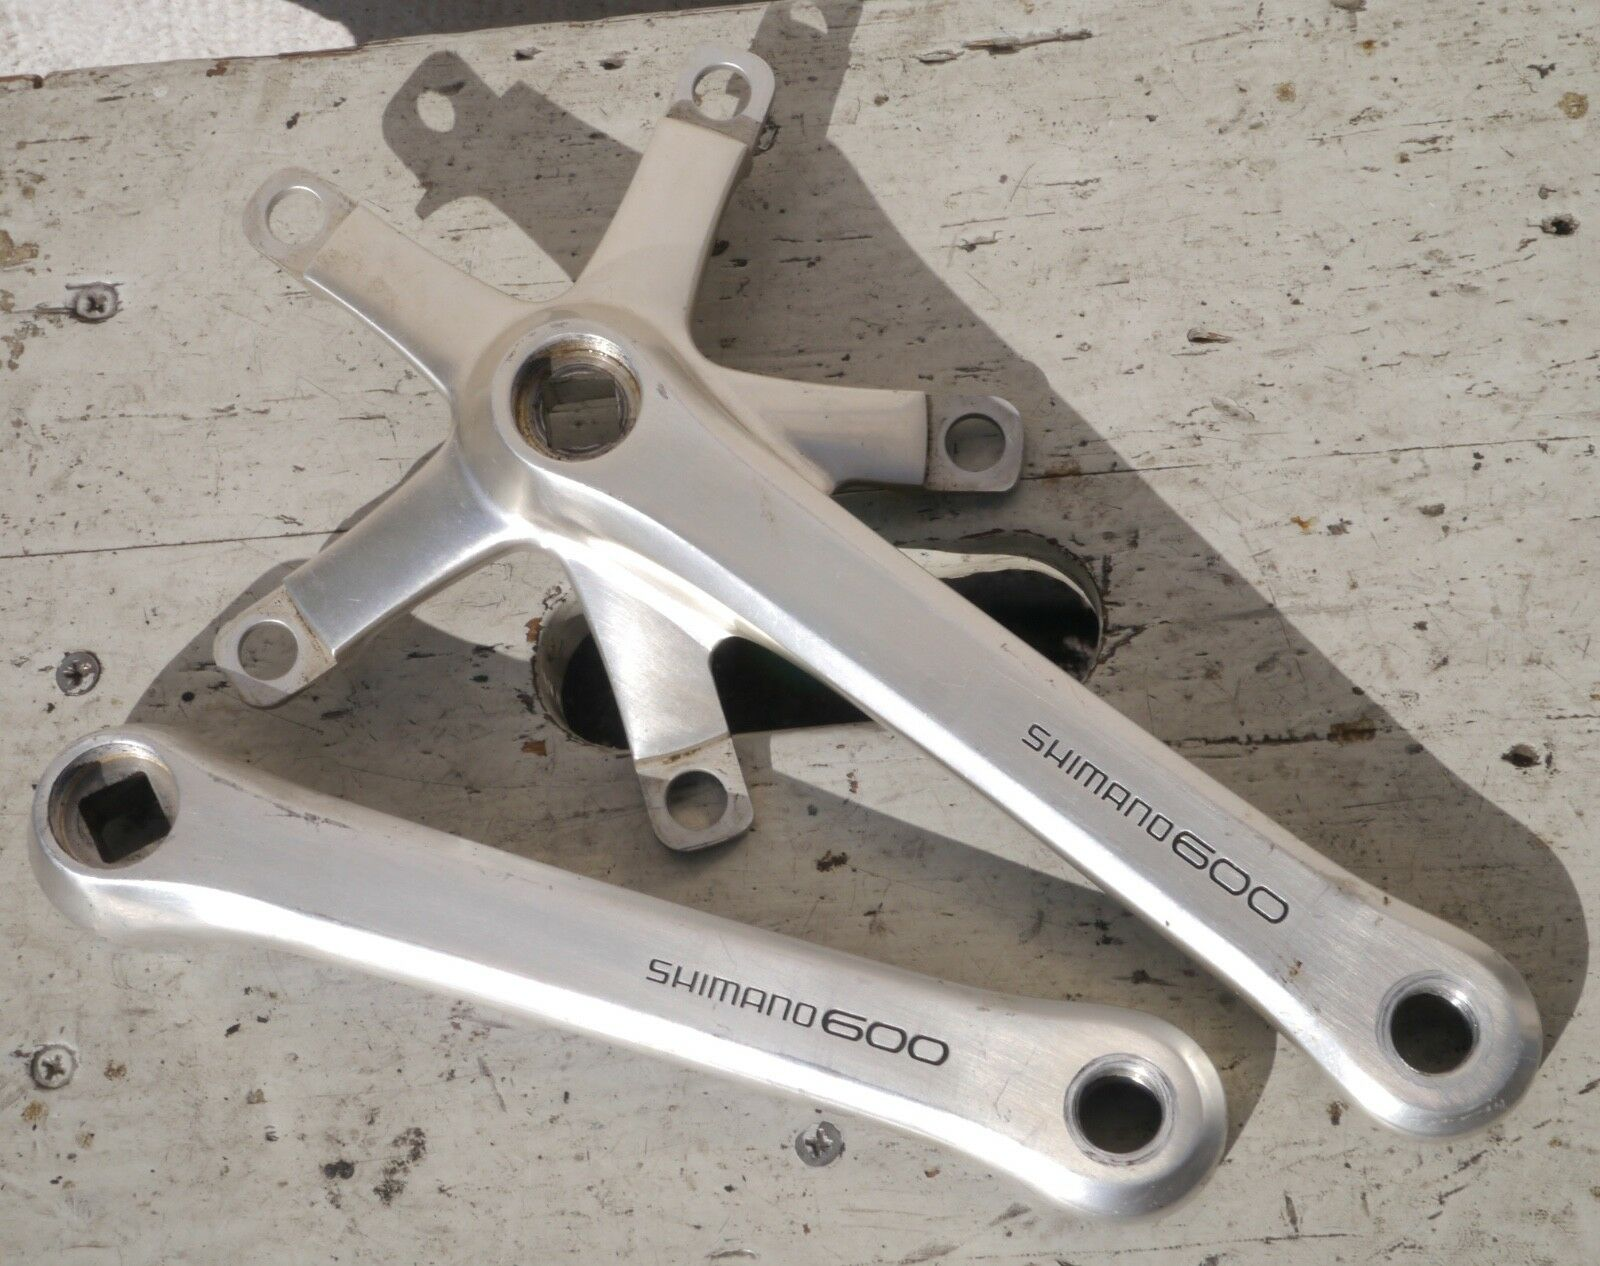 Shimano 600  FC 6207, 170 mm  crank, only left and right body